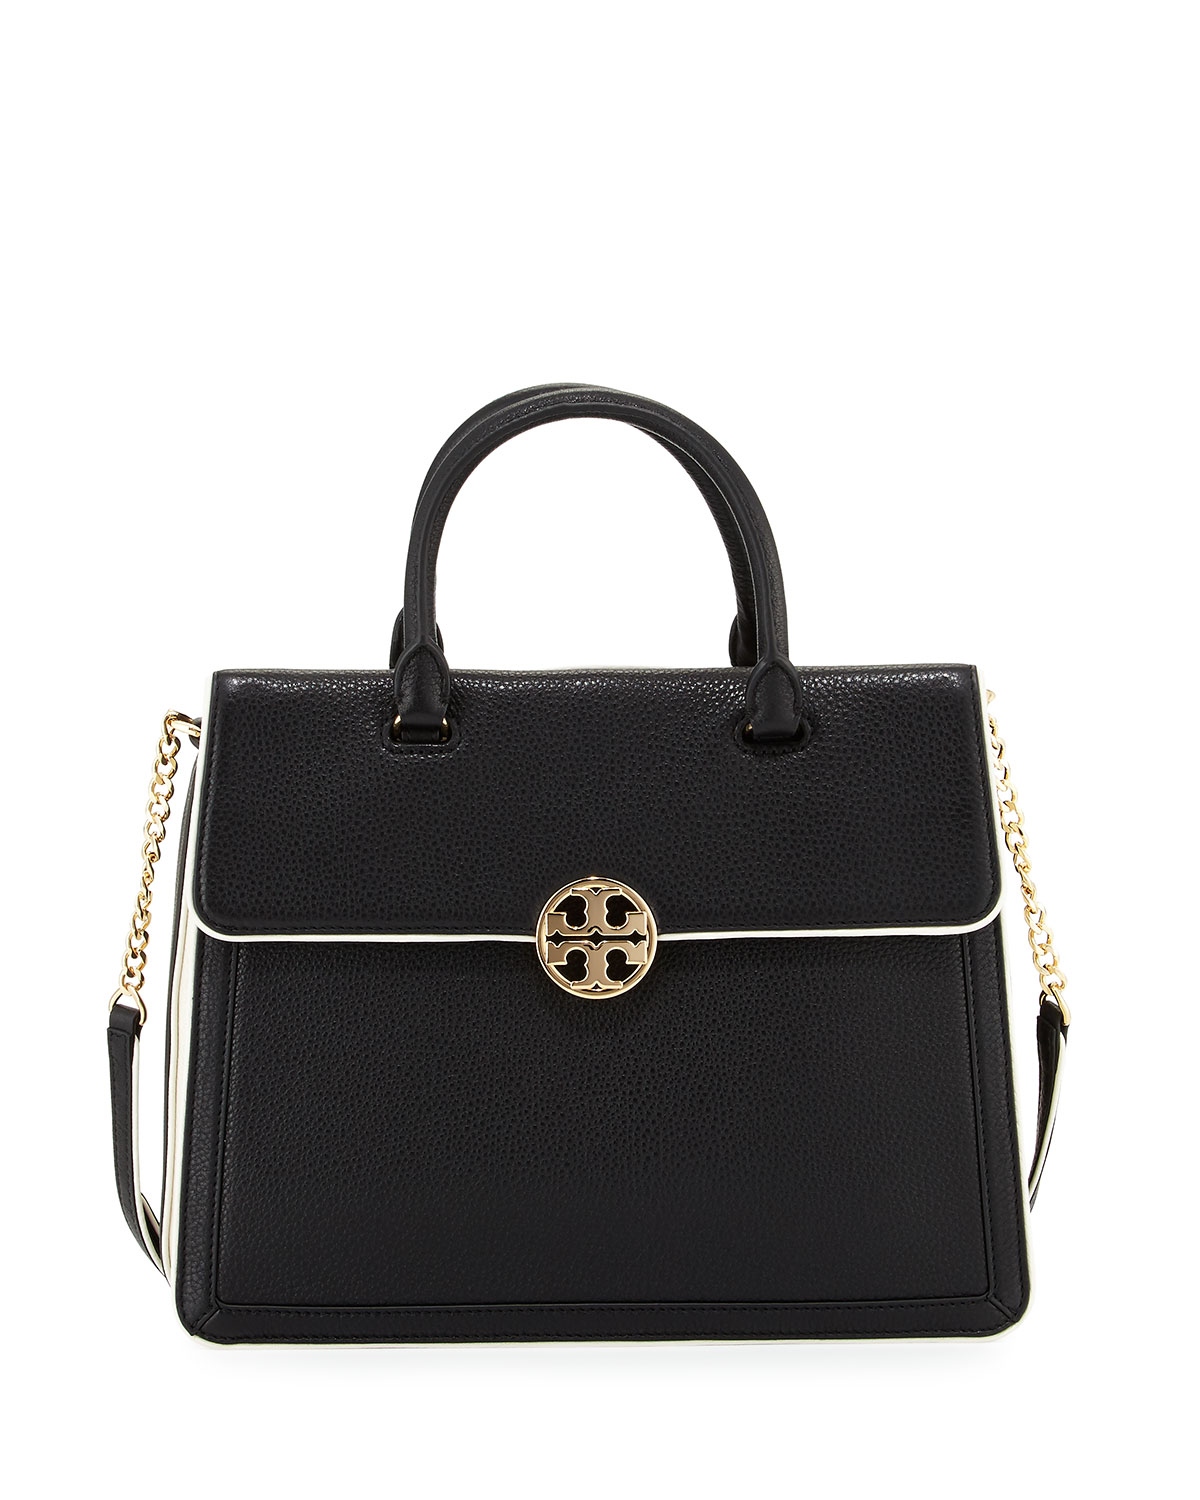 d028f721f5a Tory Burch Duet Chain Convertible Satchel Bag